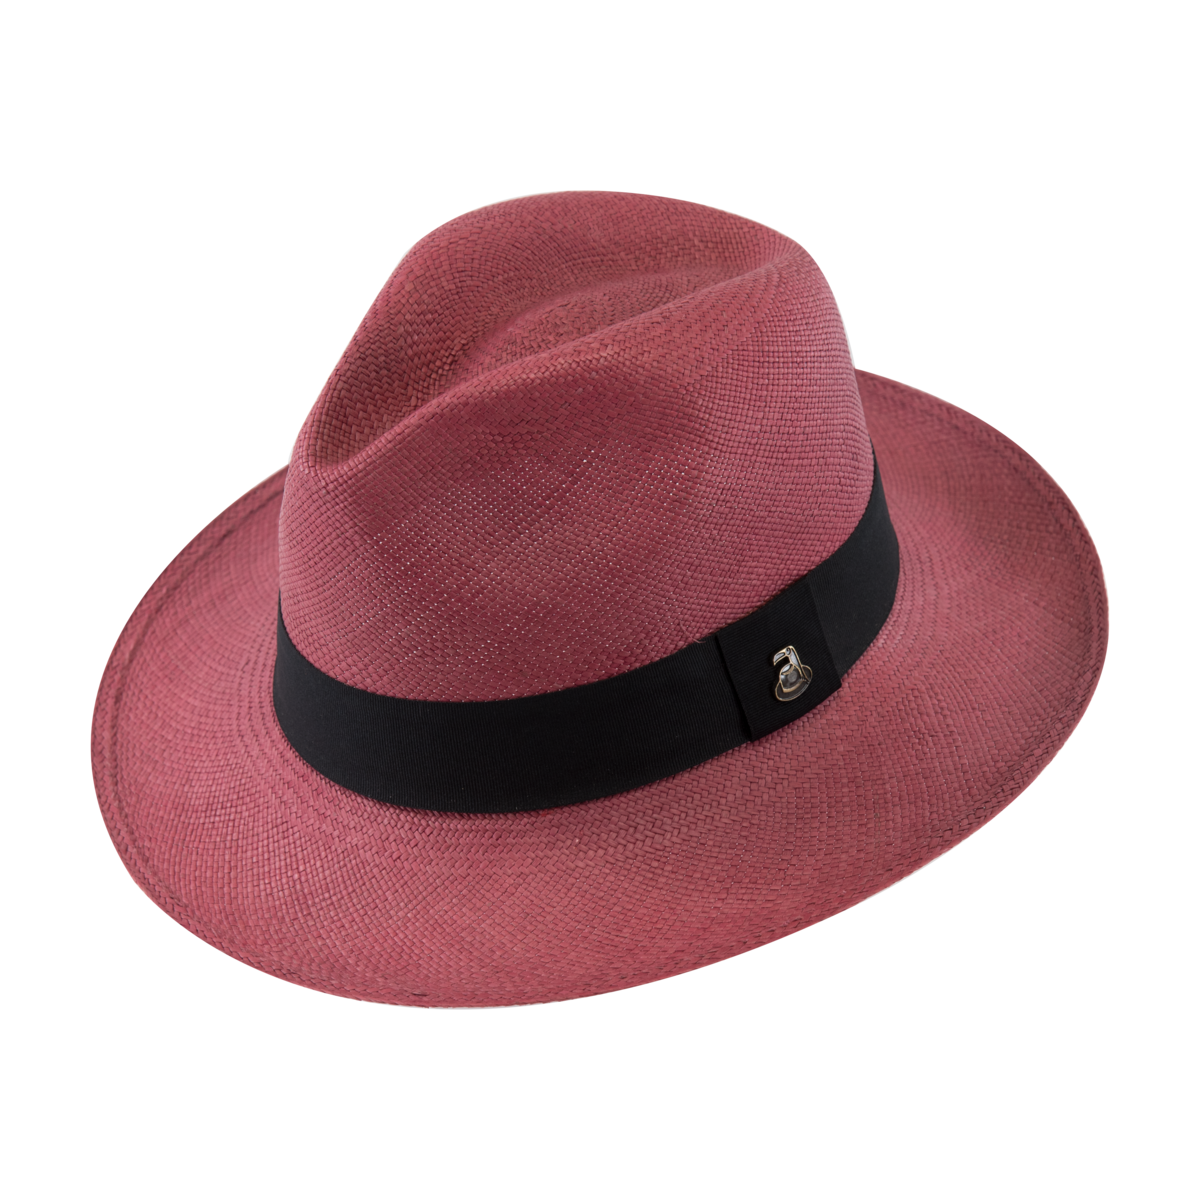 Classic Panama Red with Black Band - product images  of